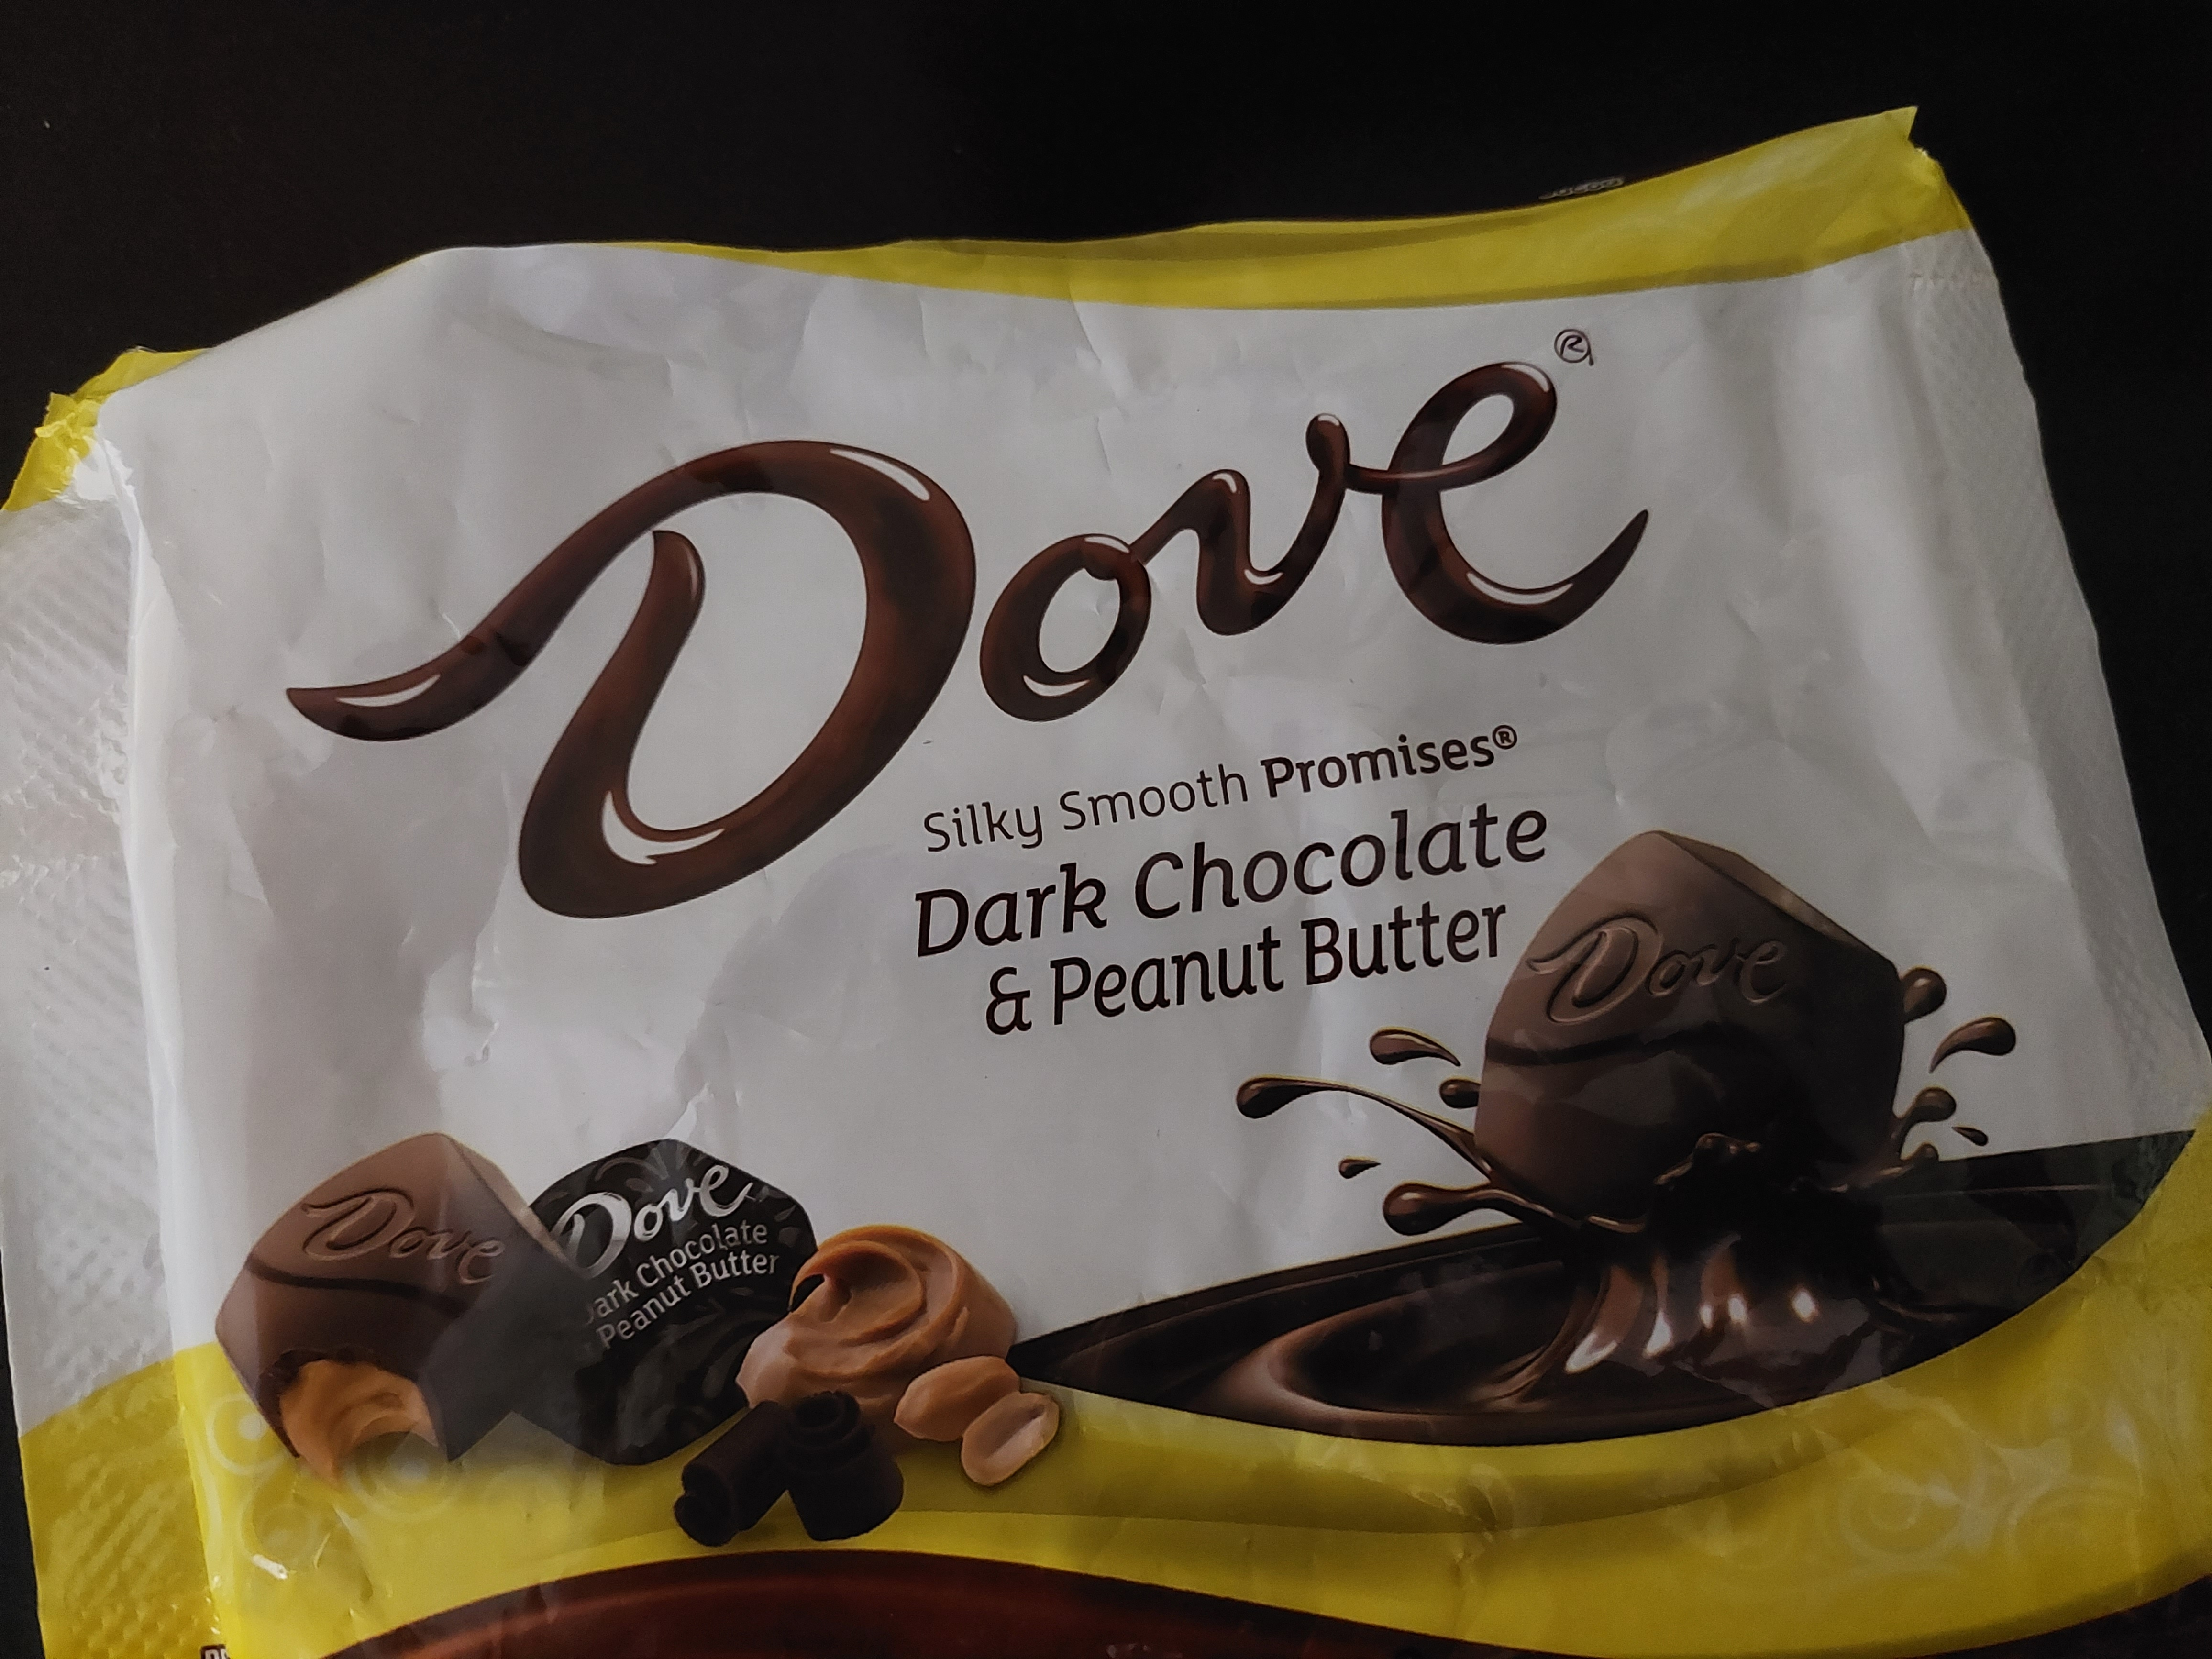 package of Dove dark chocolate and peanut butter candies